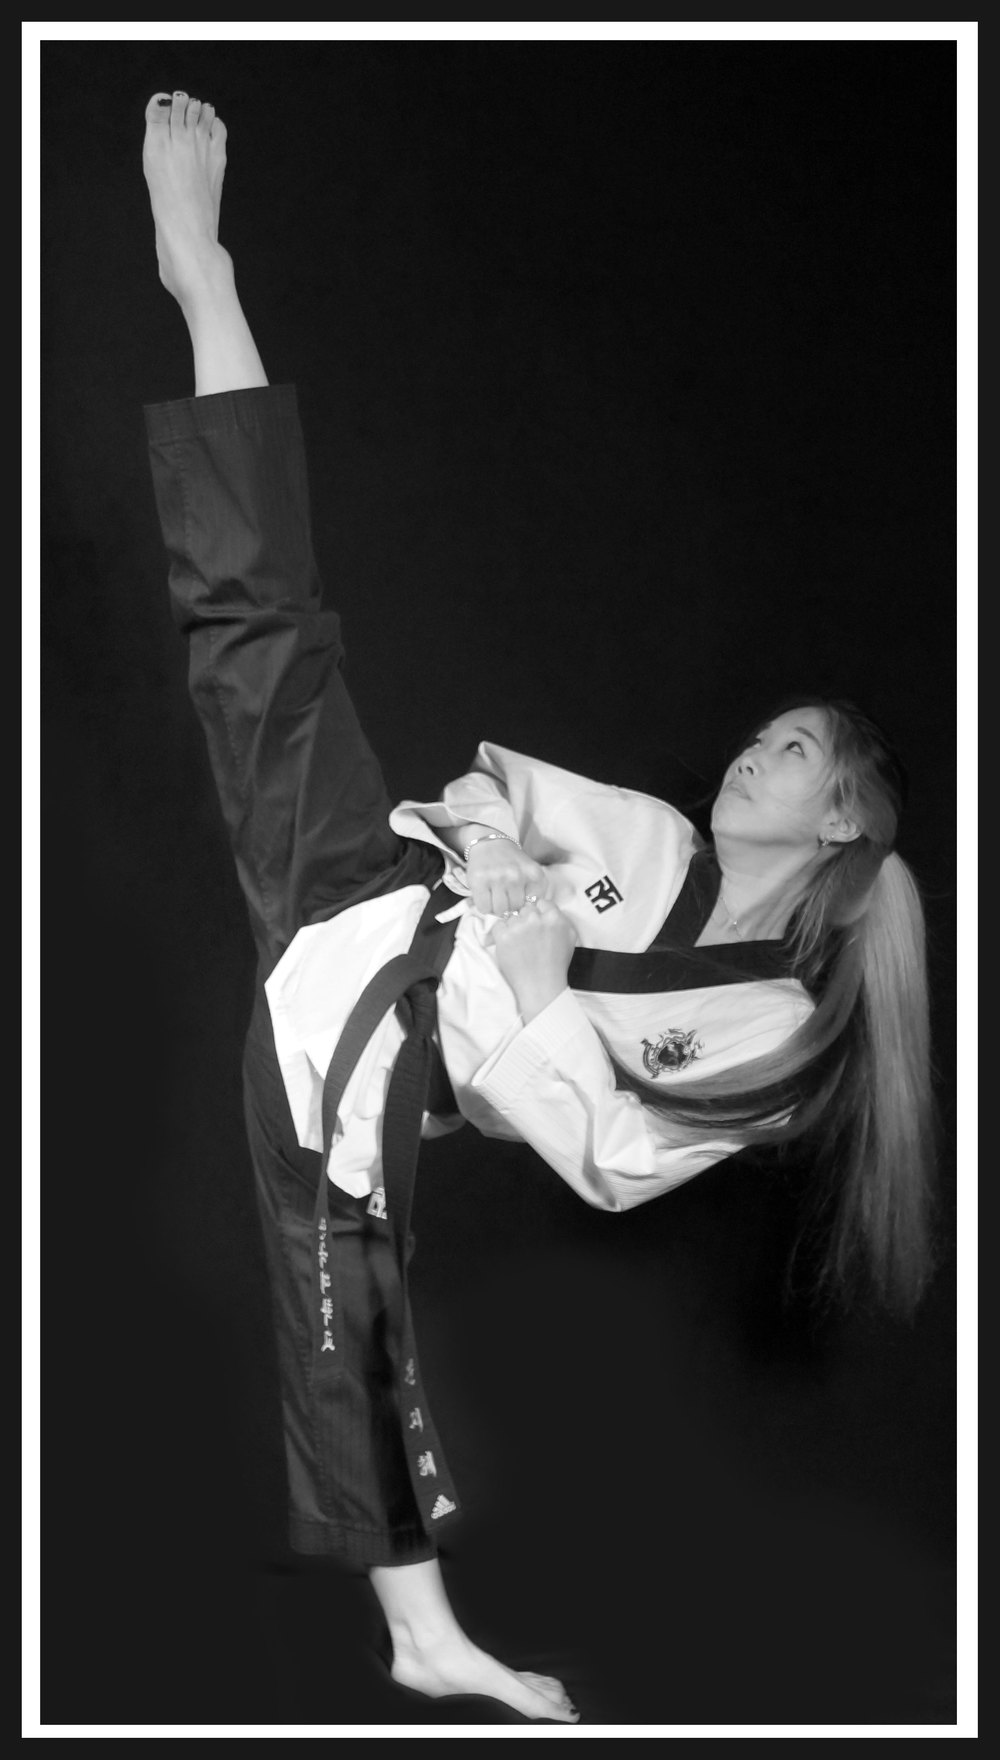 Master Moon - Korean Martial Arts Instructor, Korean Taekwondo champion